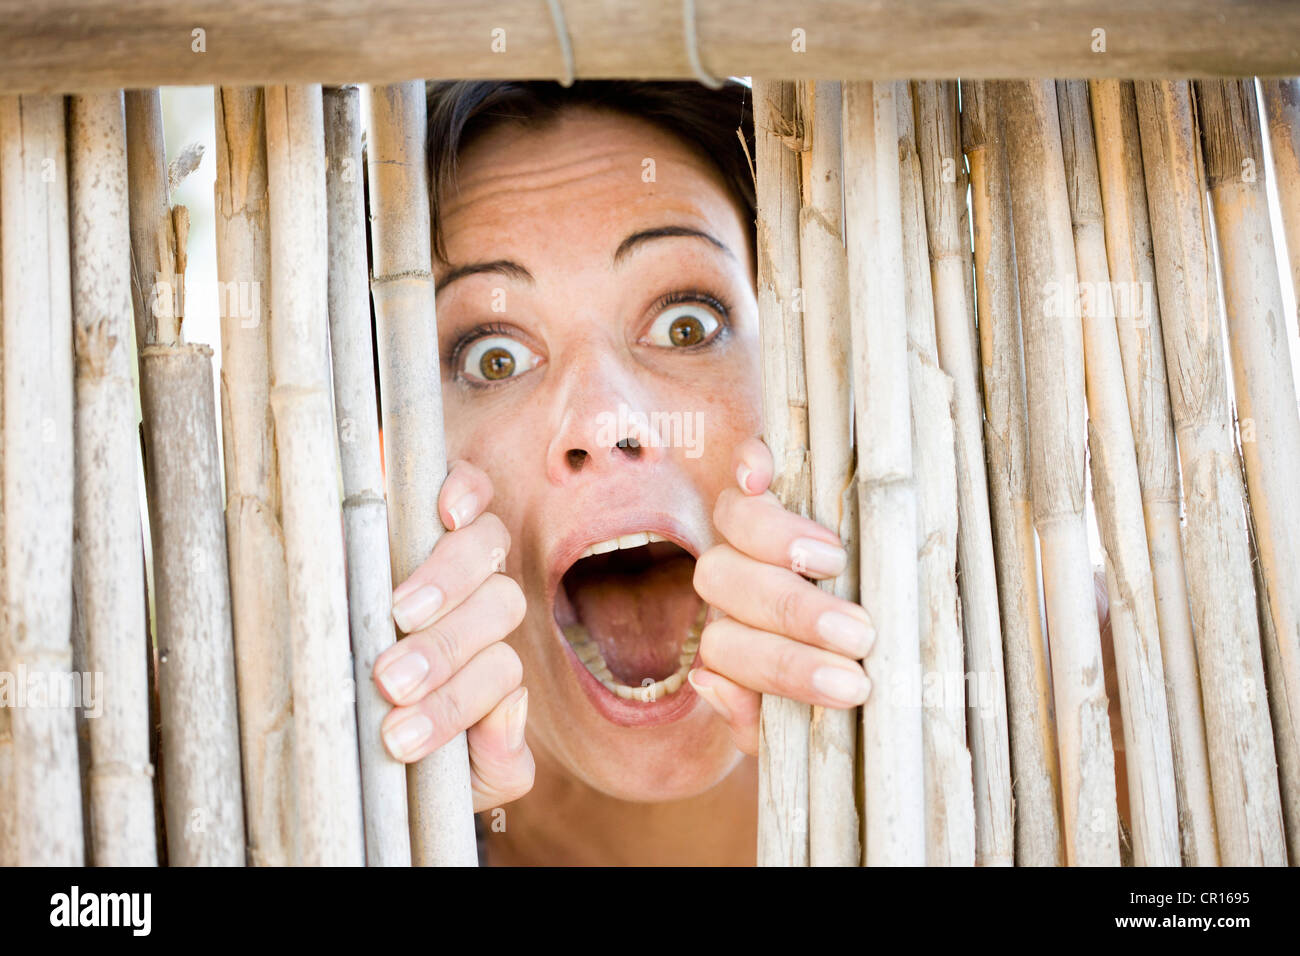 Close up of woman gasping behind fence - Stock Image